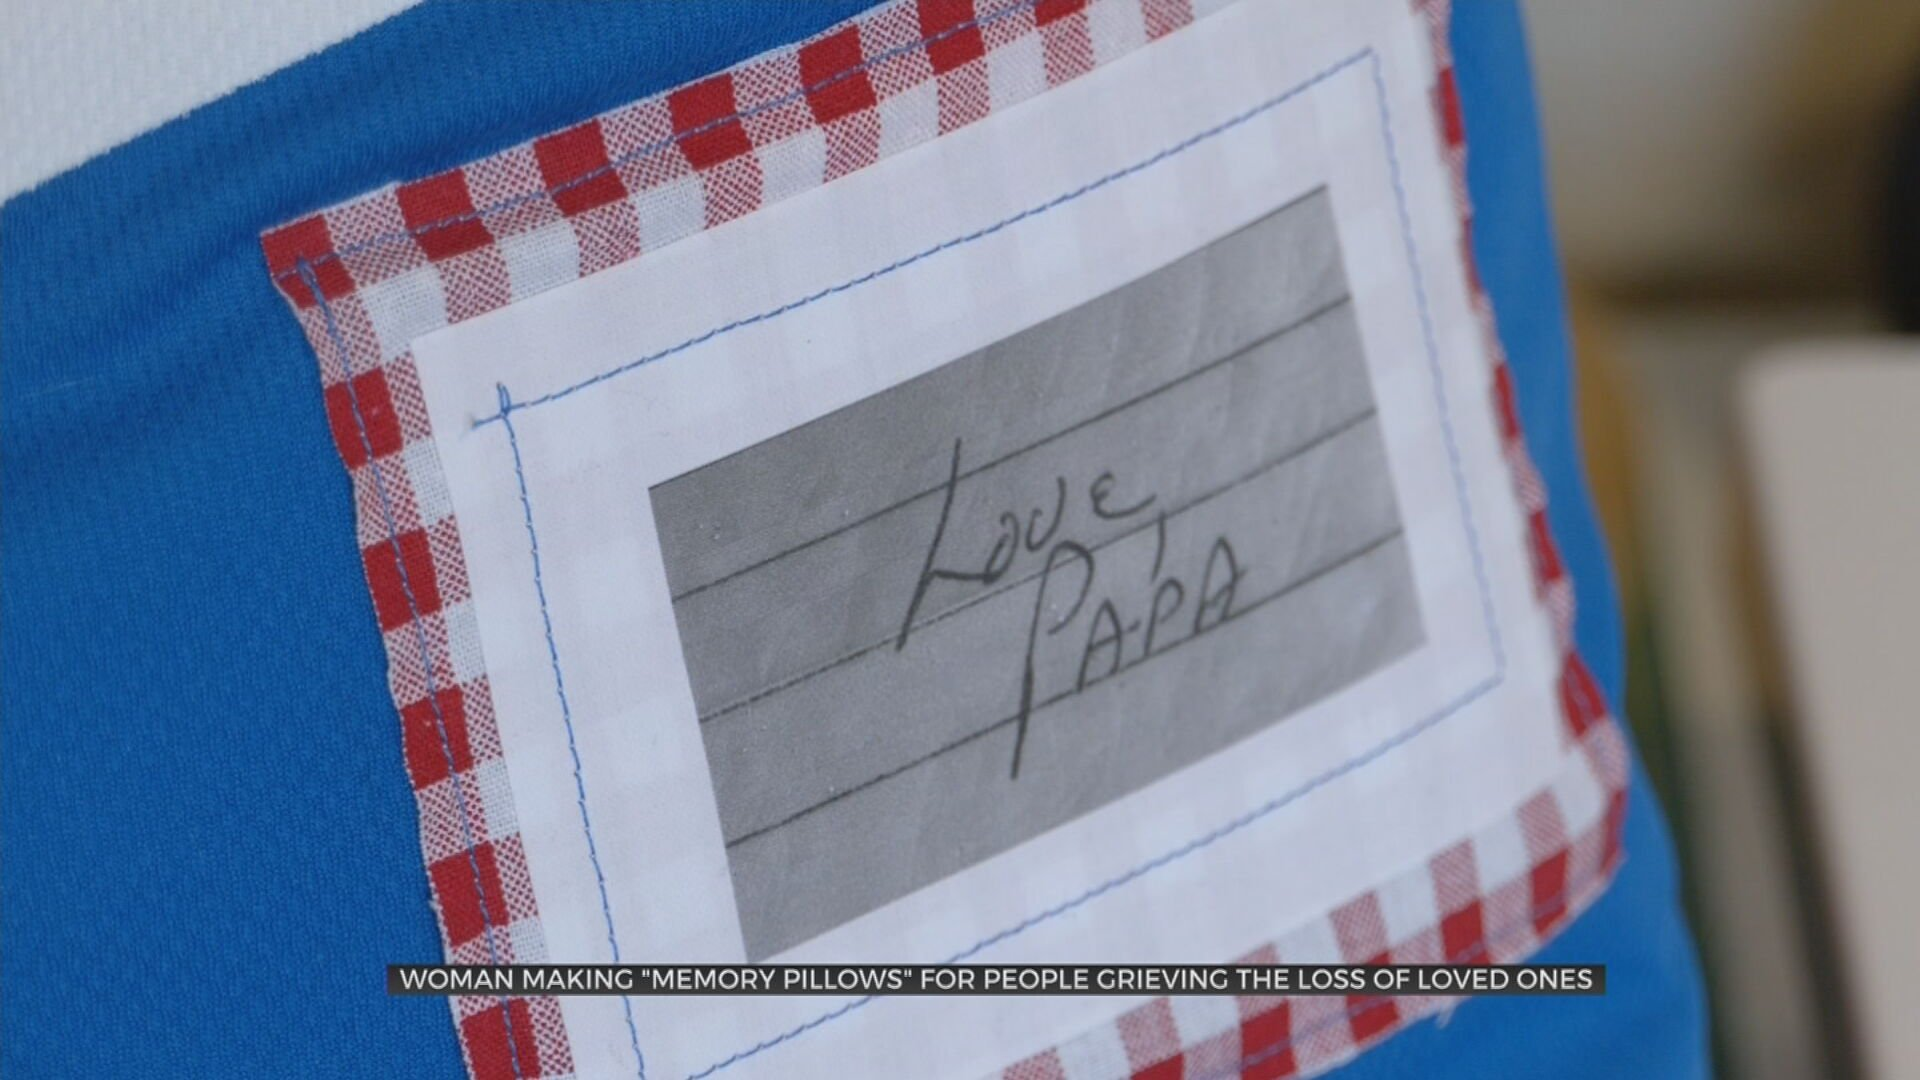 Sand Springs Woman Sews Memory Pillows For Those Grieving Loss Of Loved Ones